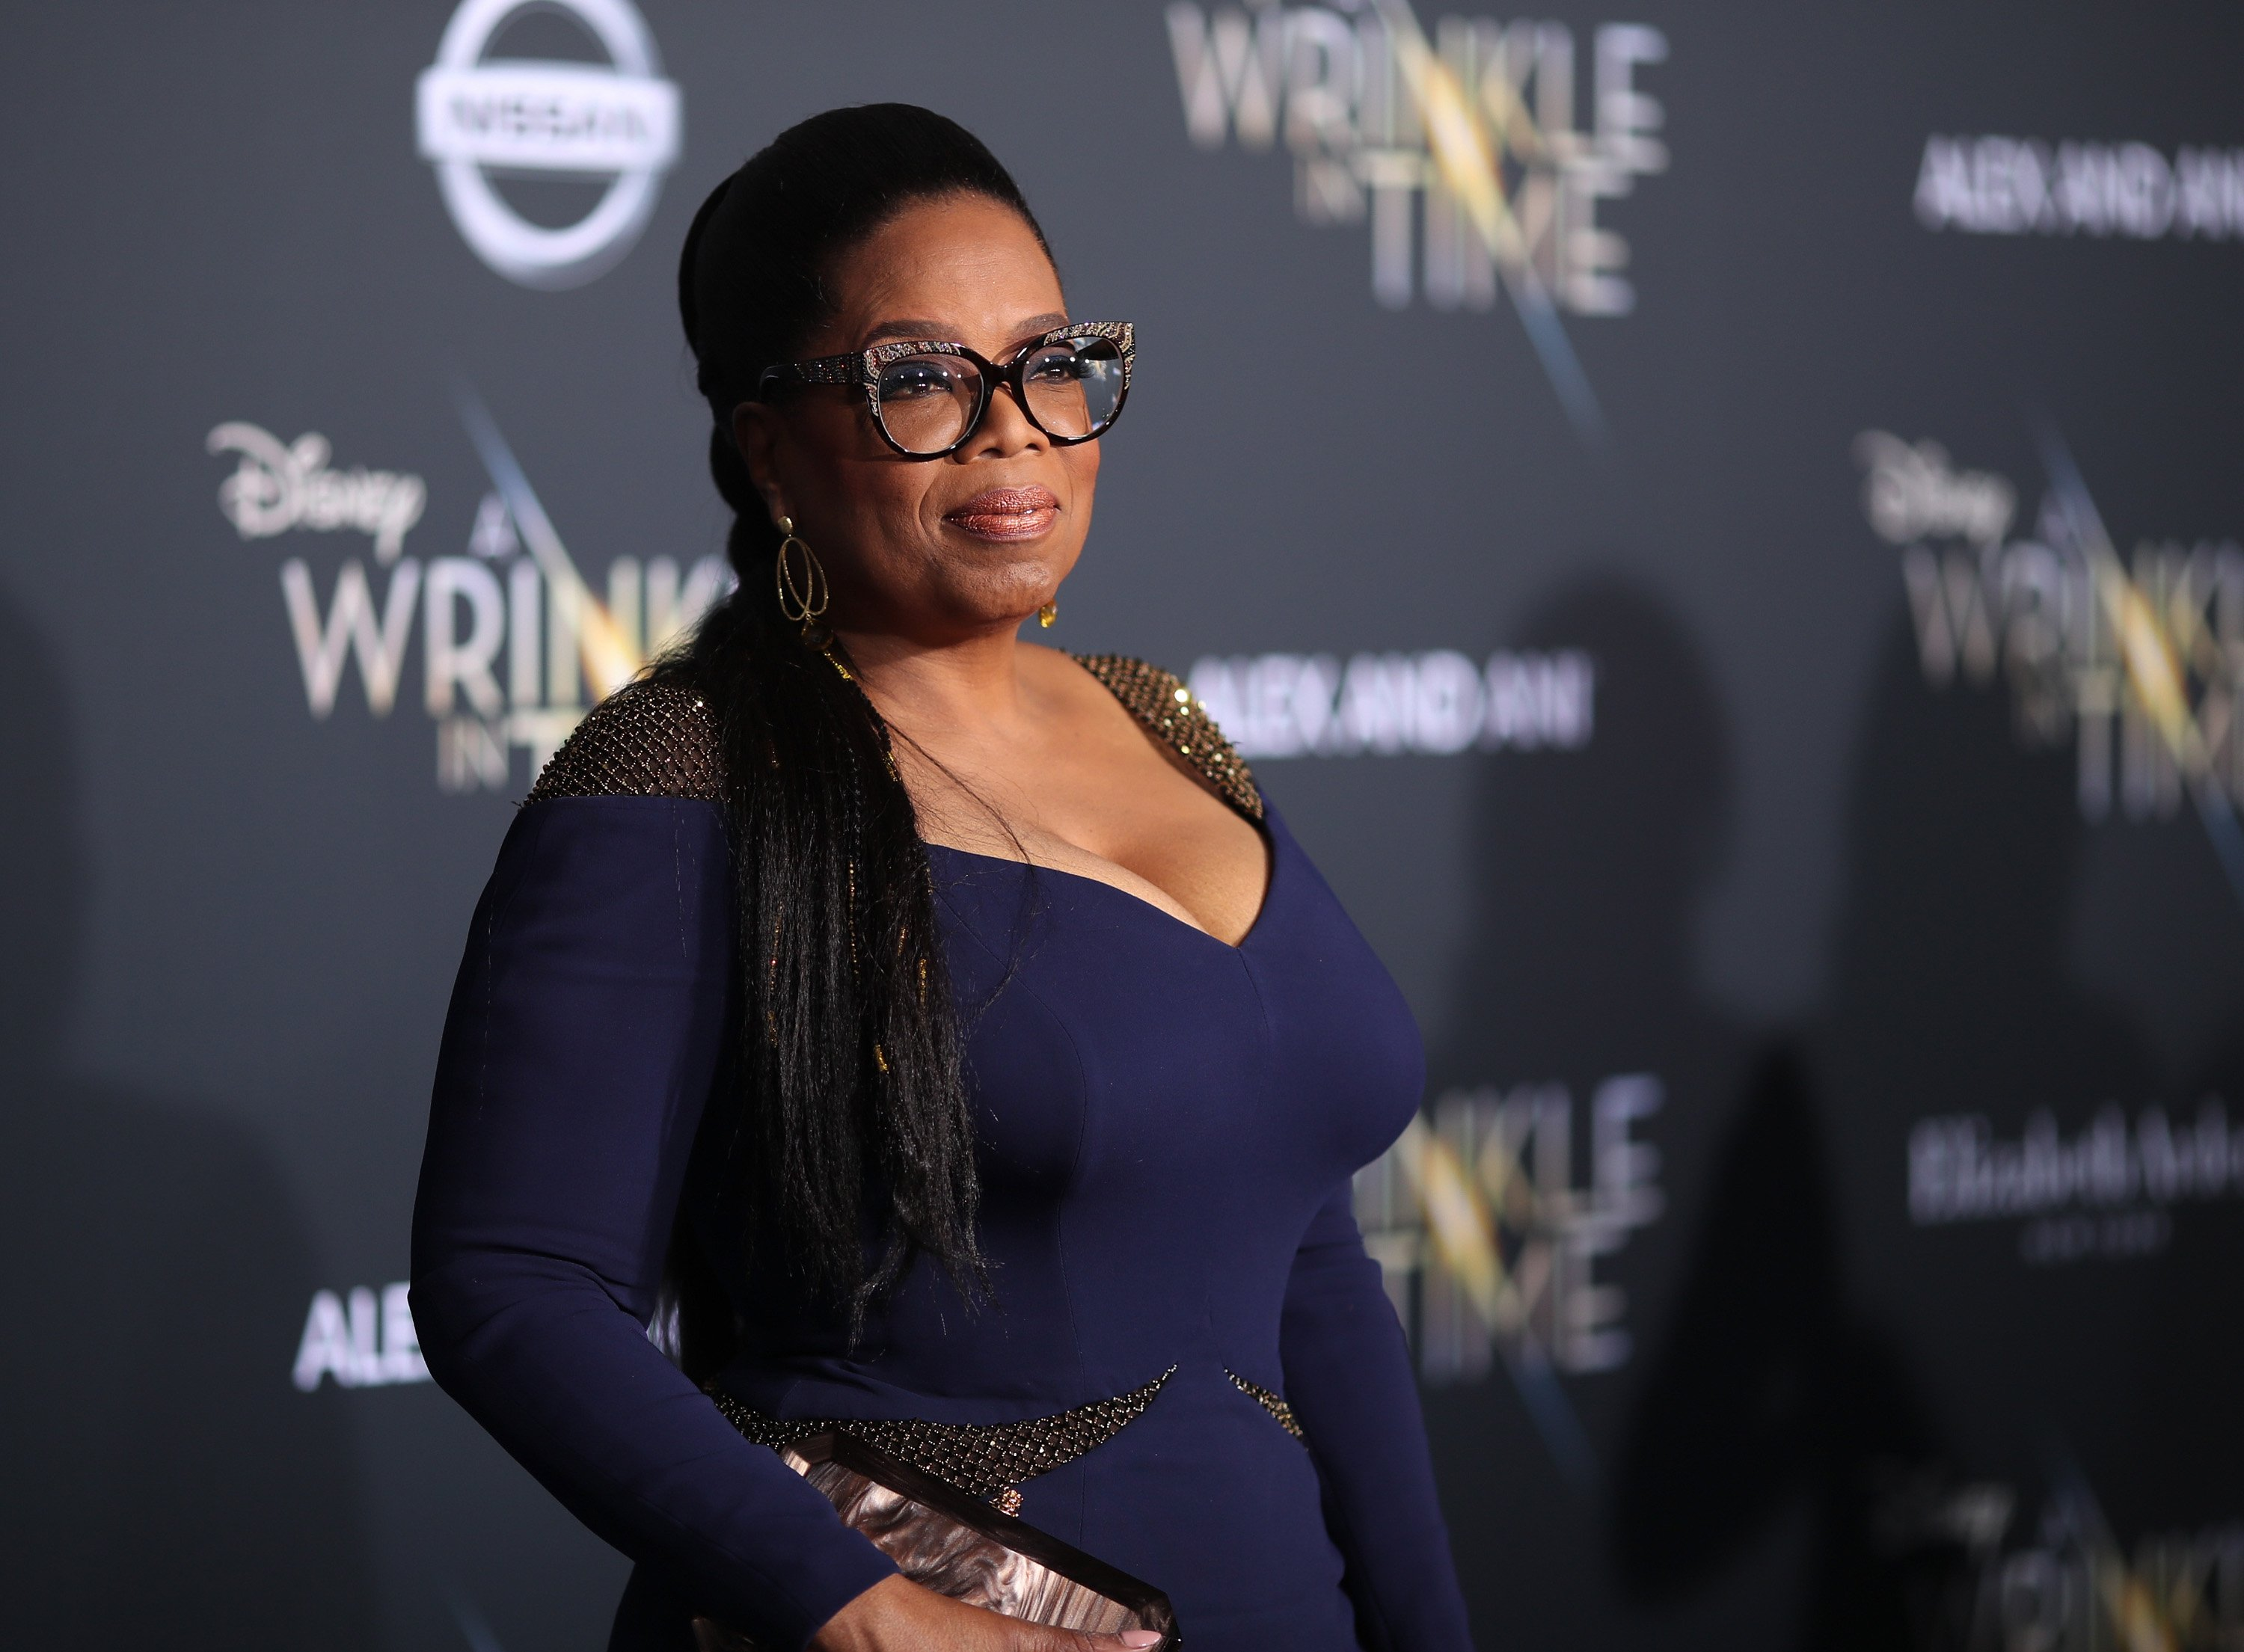 """Oprah Winfrey attends the premiere of Disney's """"A Wrinkle In Time"""" at the El Capitan Theatre on February 26, 2018. 